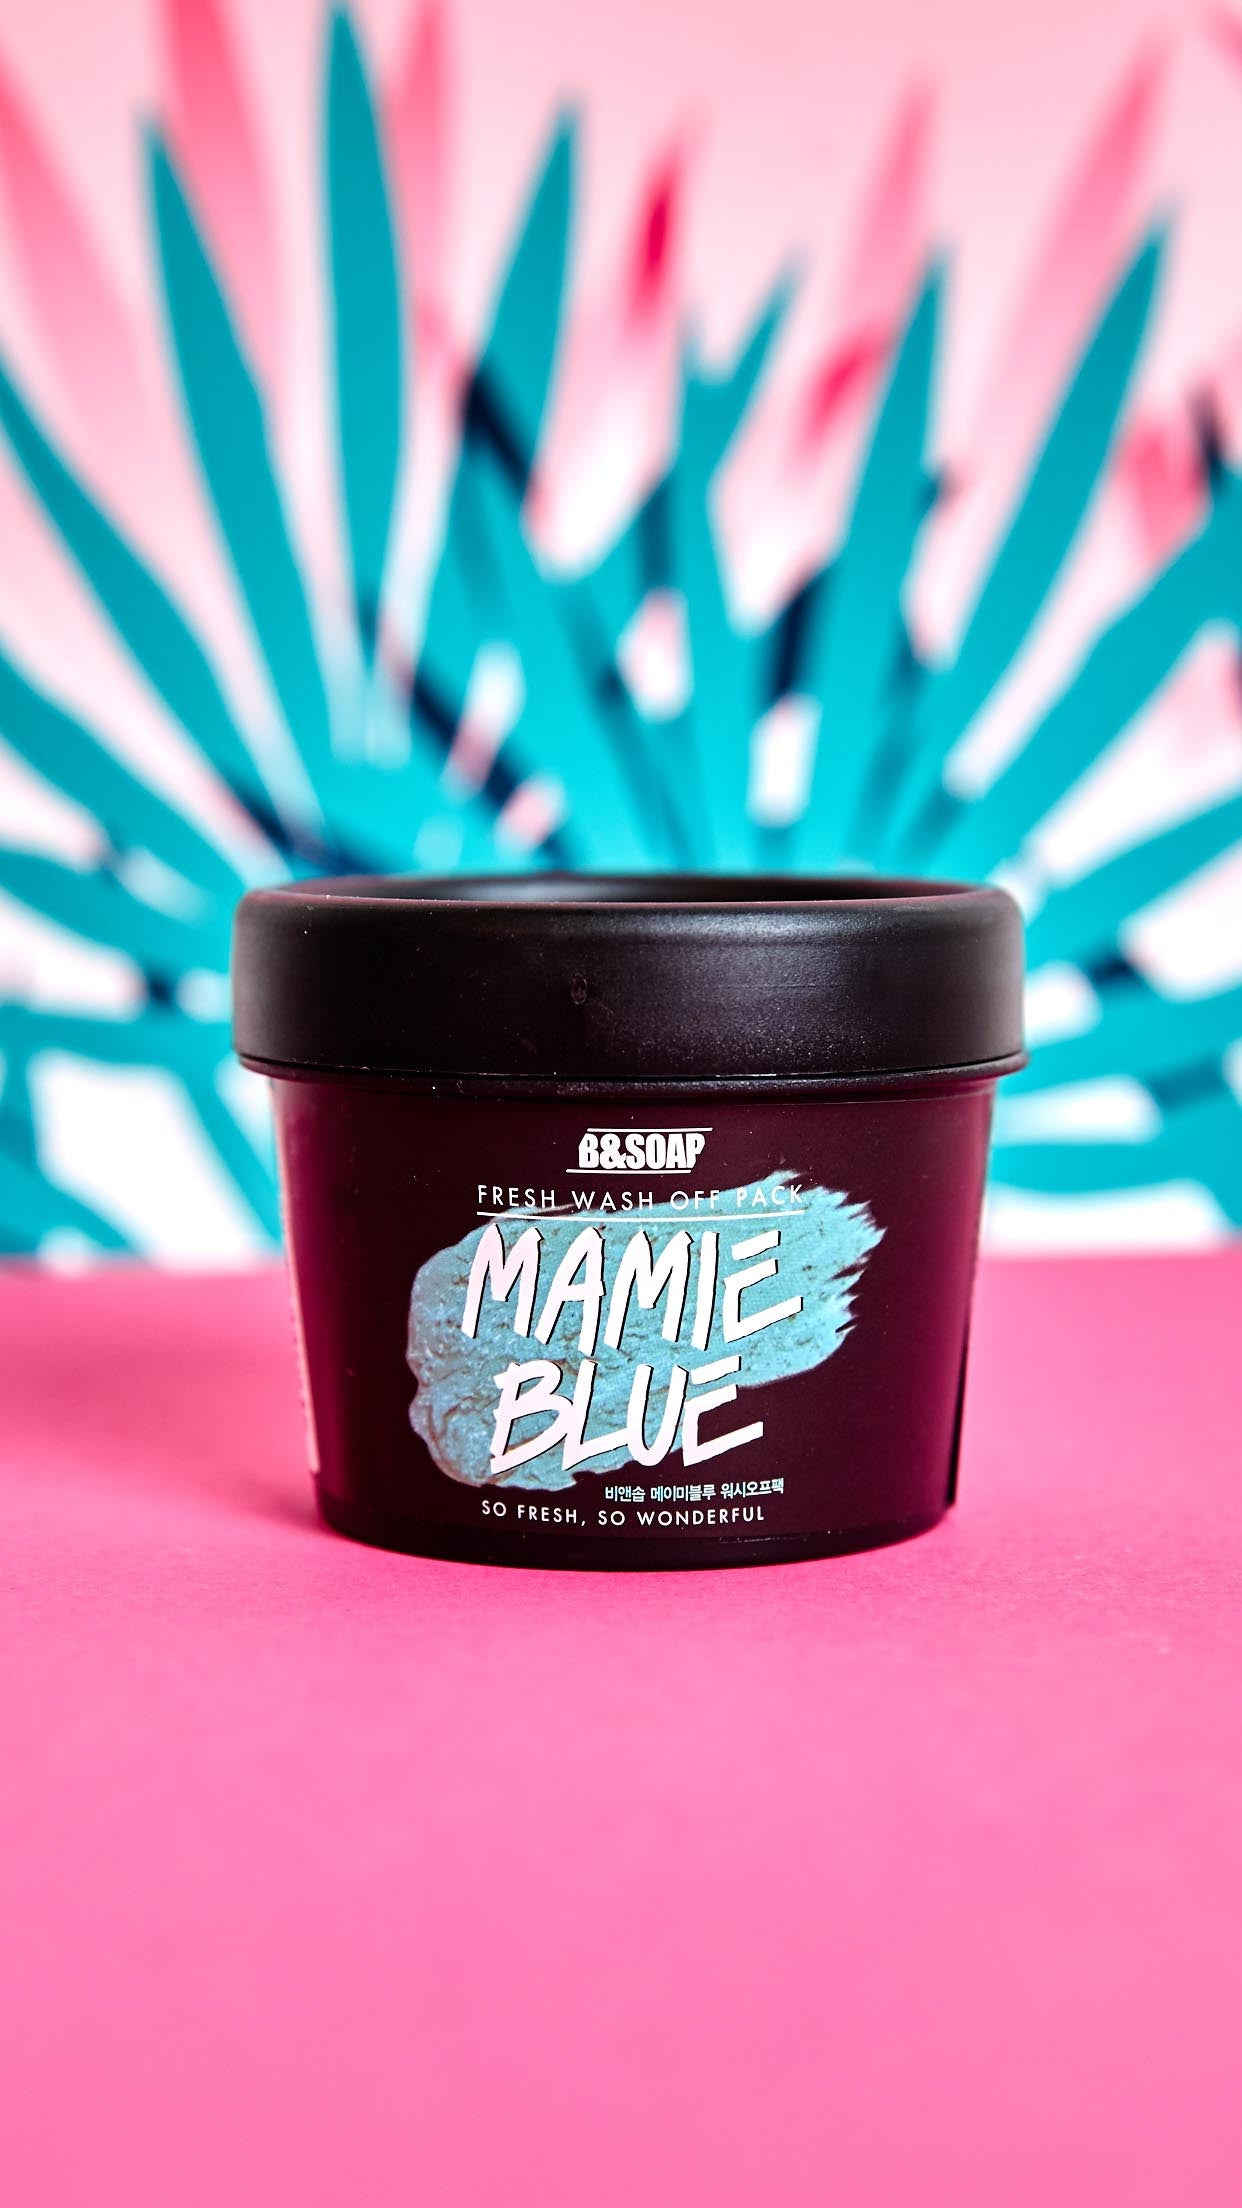 Mamie Blue Refreshing Wash-Off Face Mask